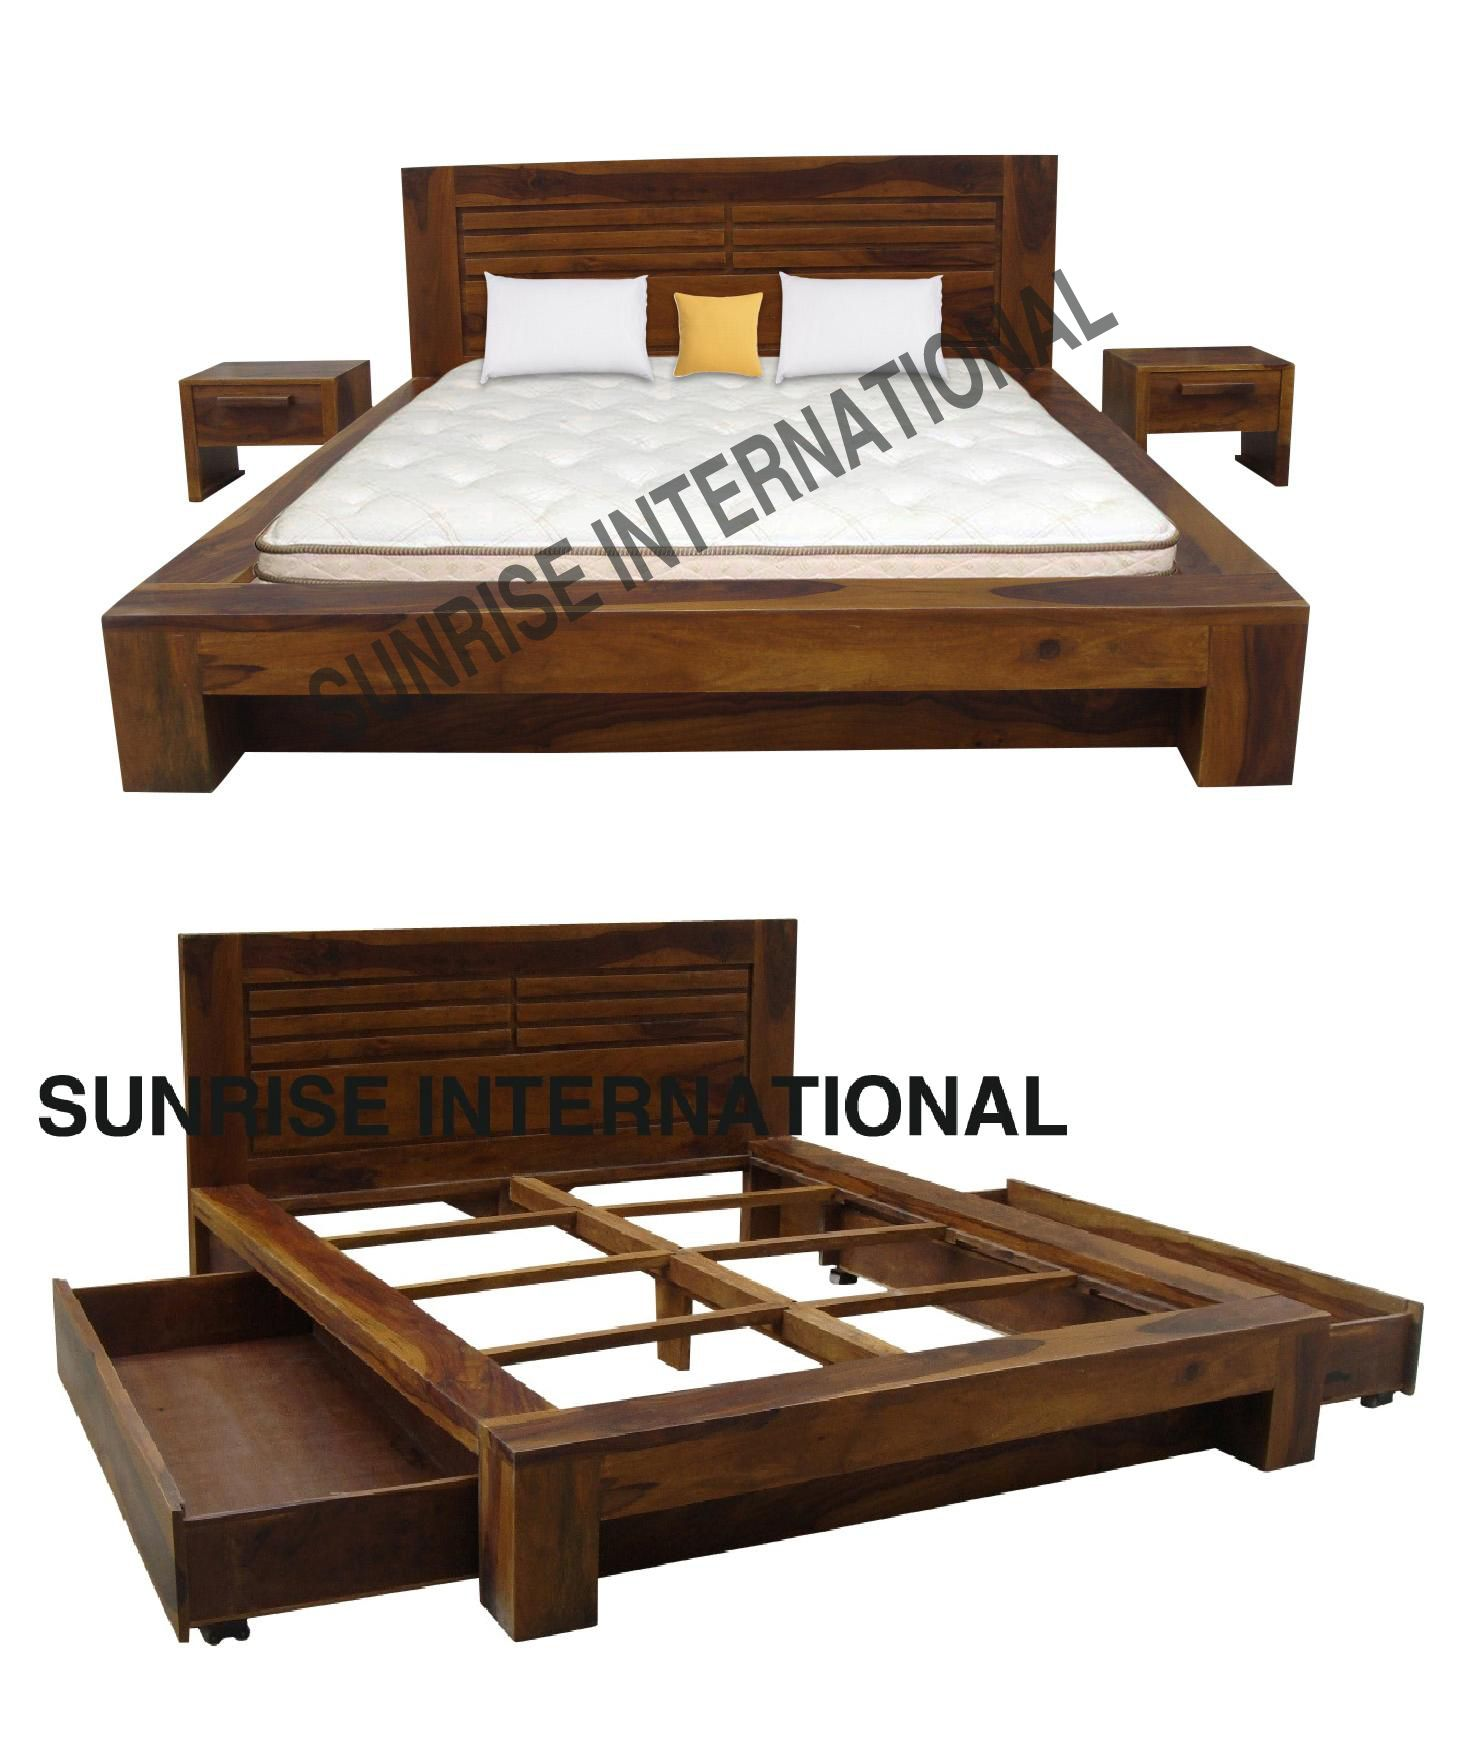 Indian bedroom furniture designs - Wooden Bed Beds Design Bedroom Furniture Designs India Email Jetain Sunriseartexports